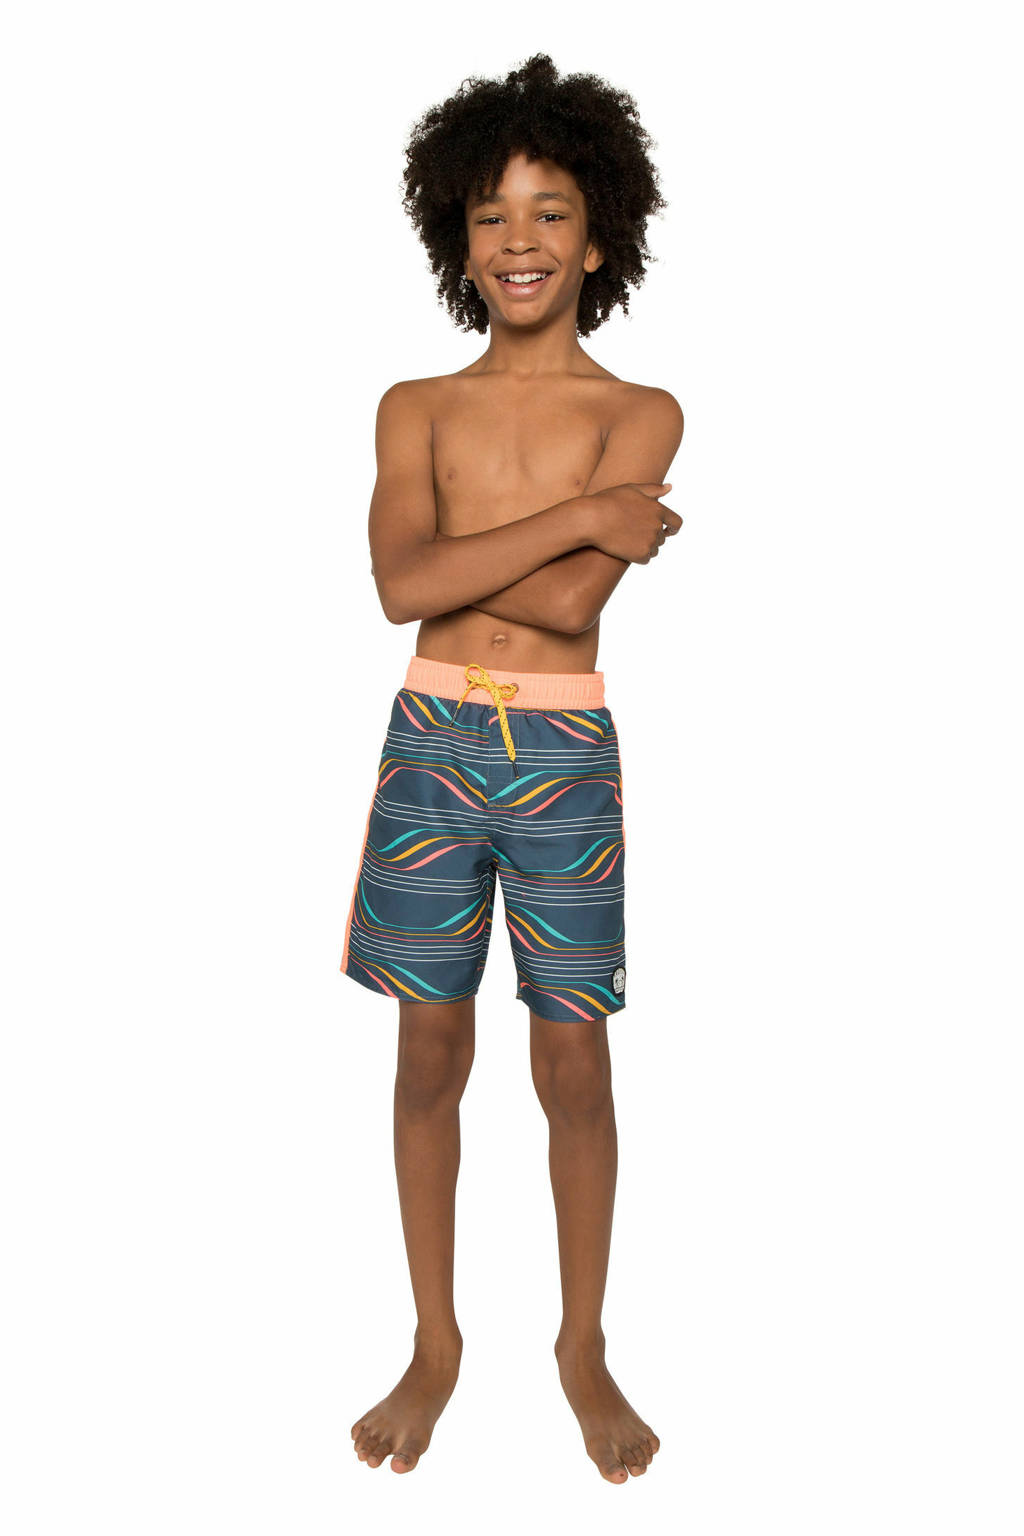 Protest zwemshort Zeno JR blauw, Empire Blue